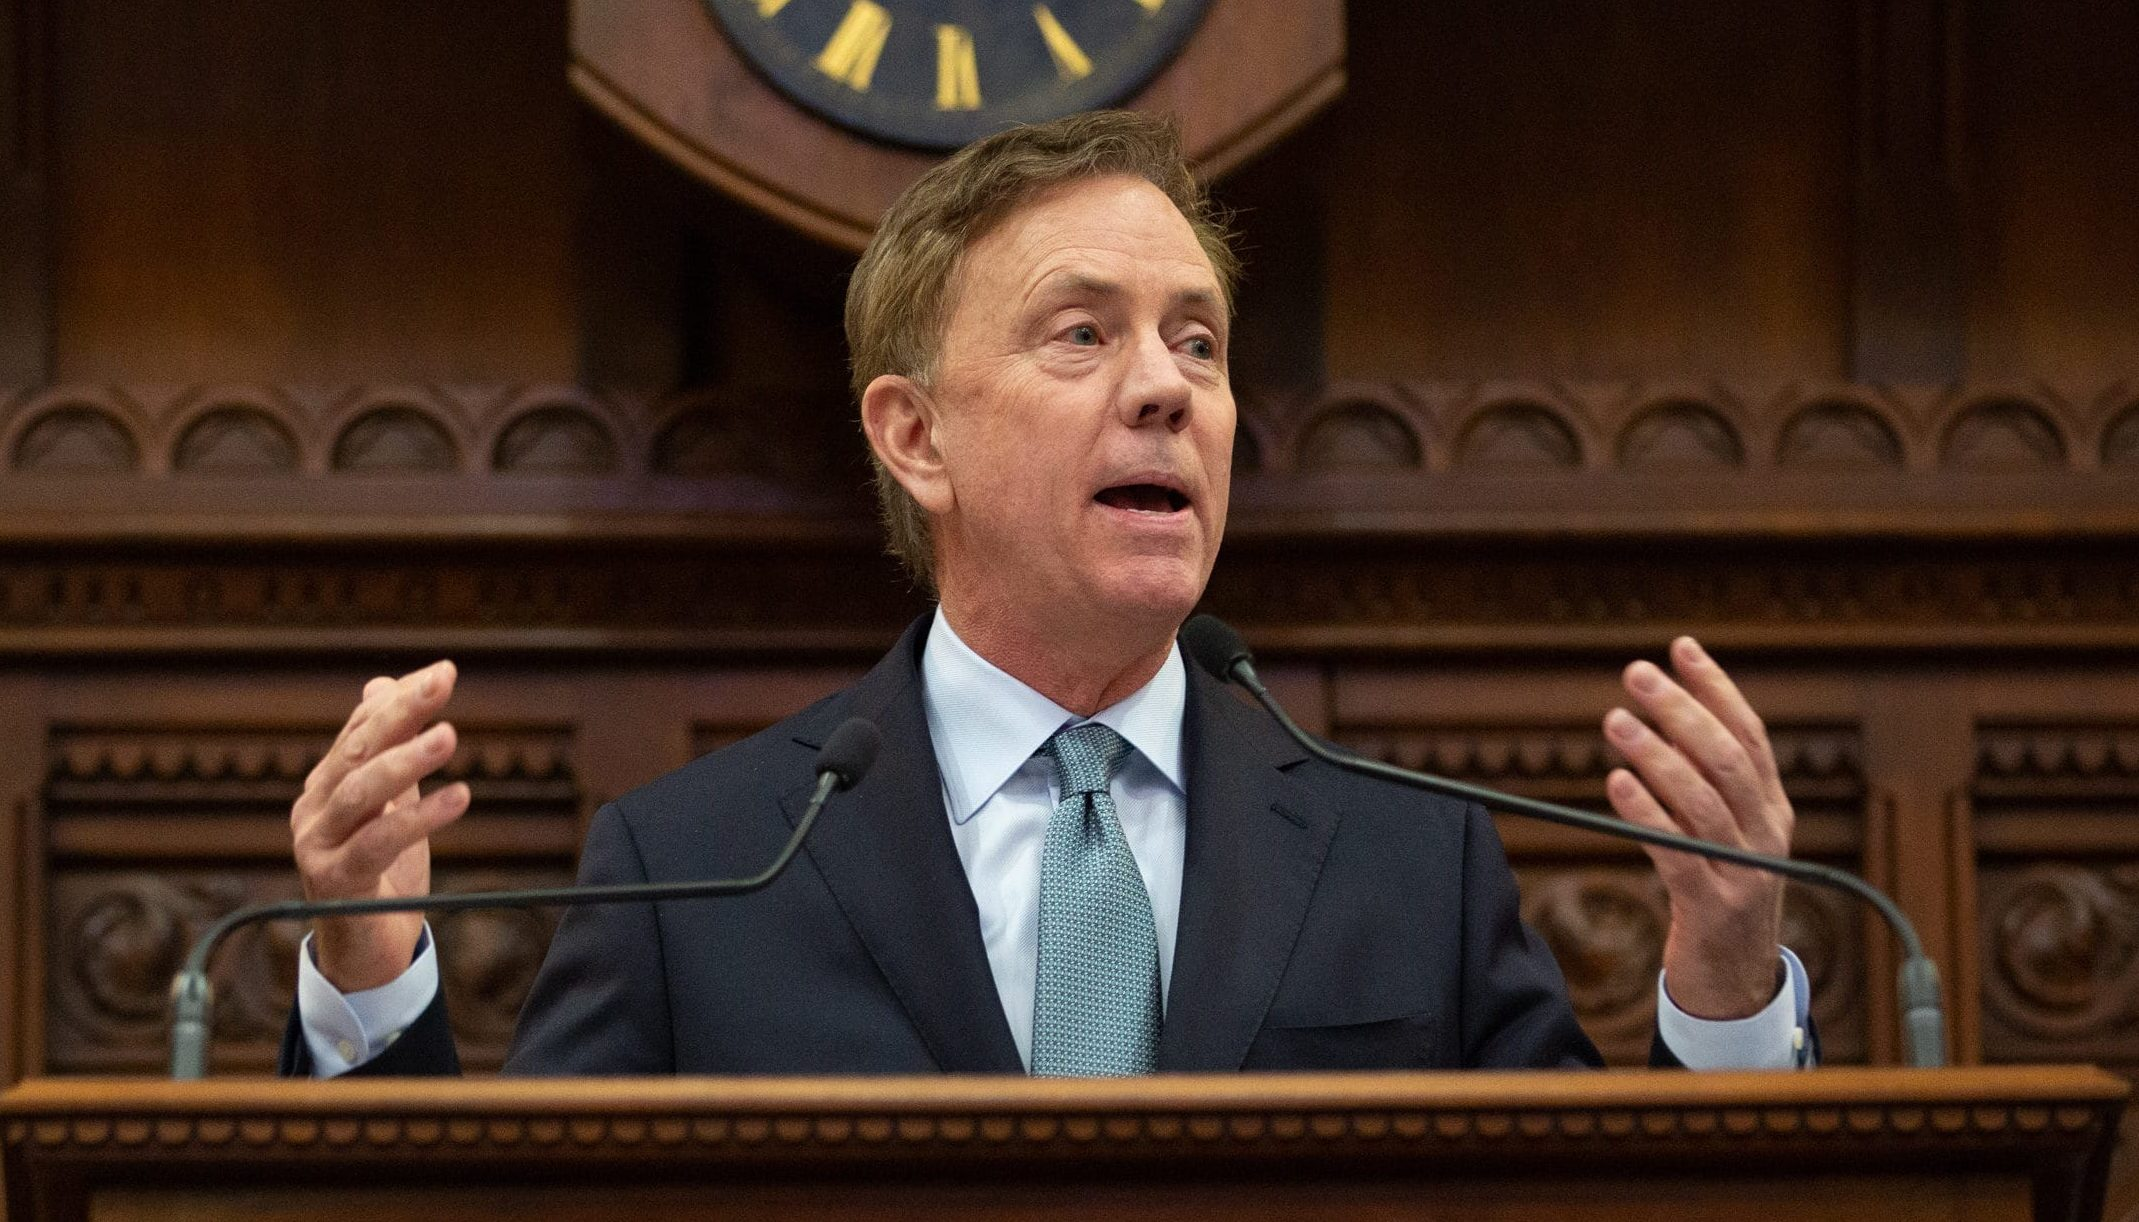 Lawmakers expect lean budget from Lamont. But how lean will it be?